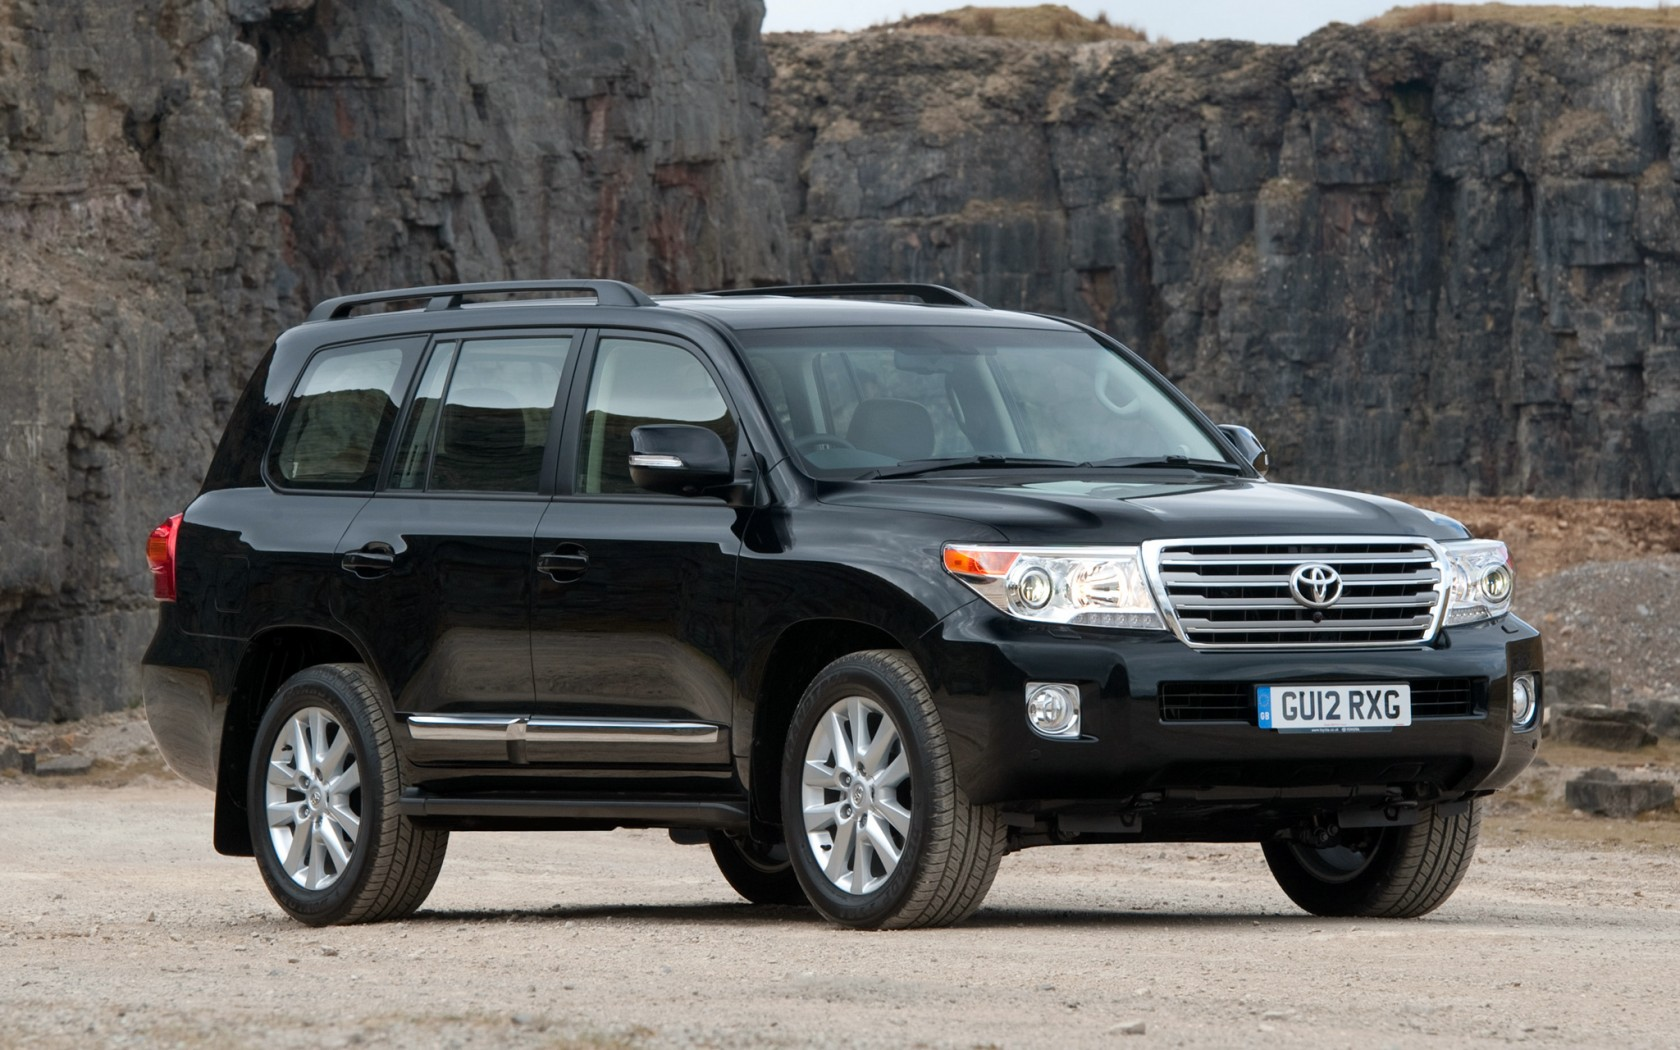 2009 toyota land cruiser 200 pictures information and. Black Bedroom Furniture Sets. Home Design Ideas